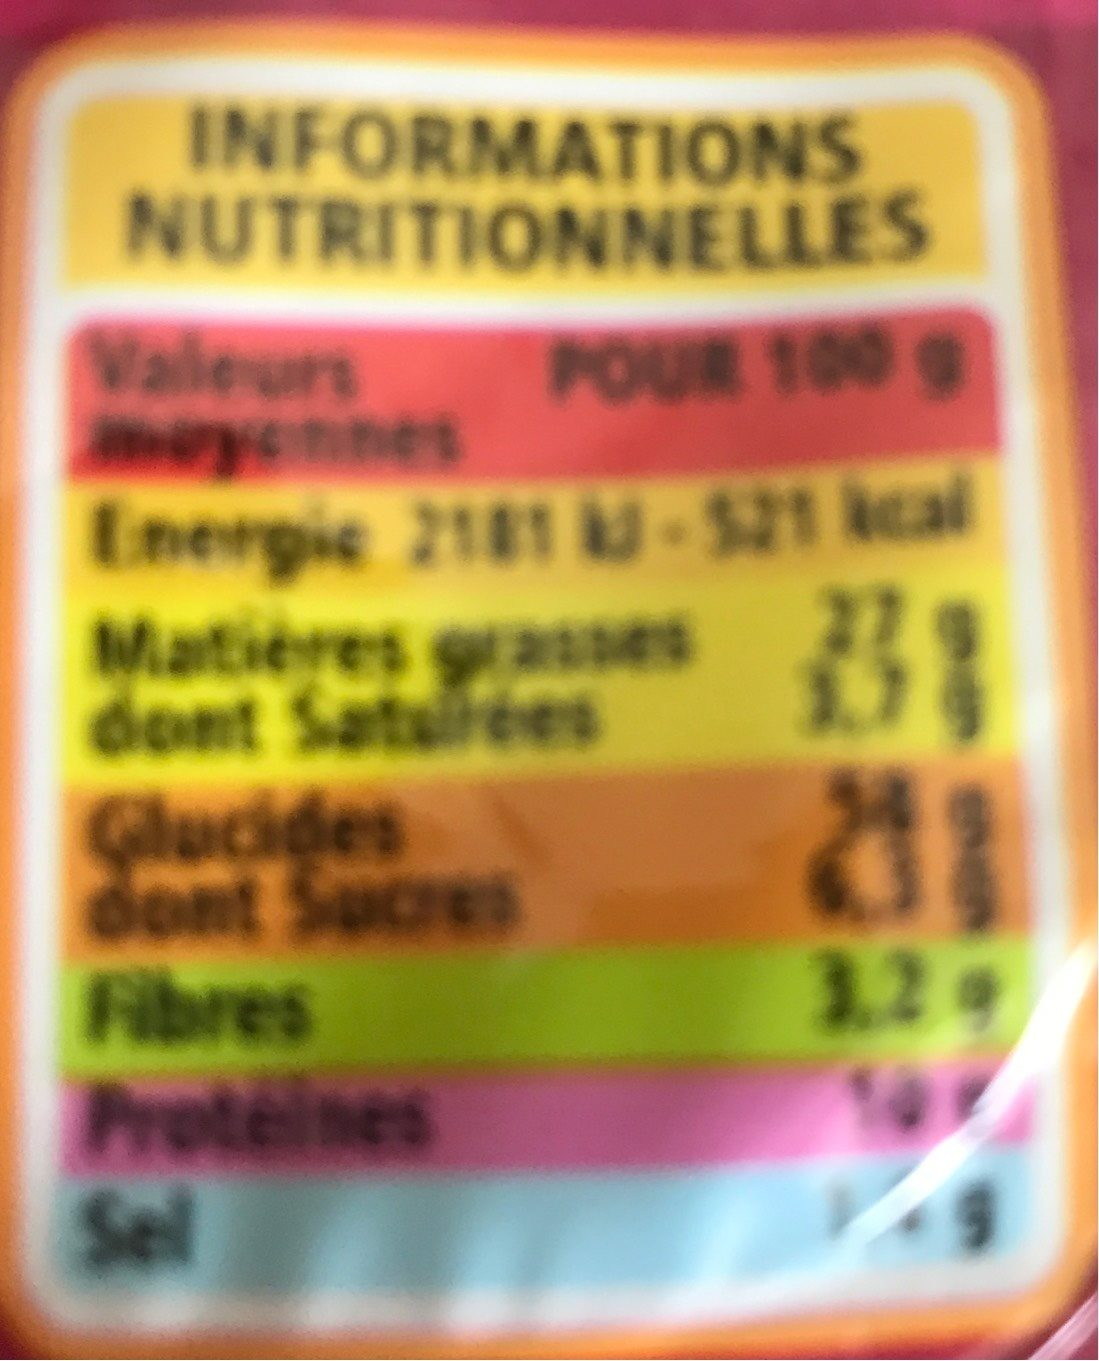 Coffret Crackers - Nutrition facts